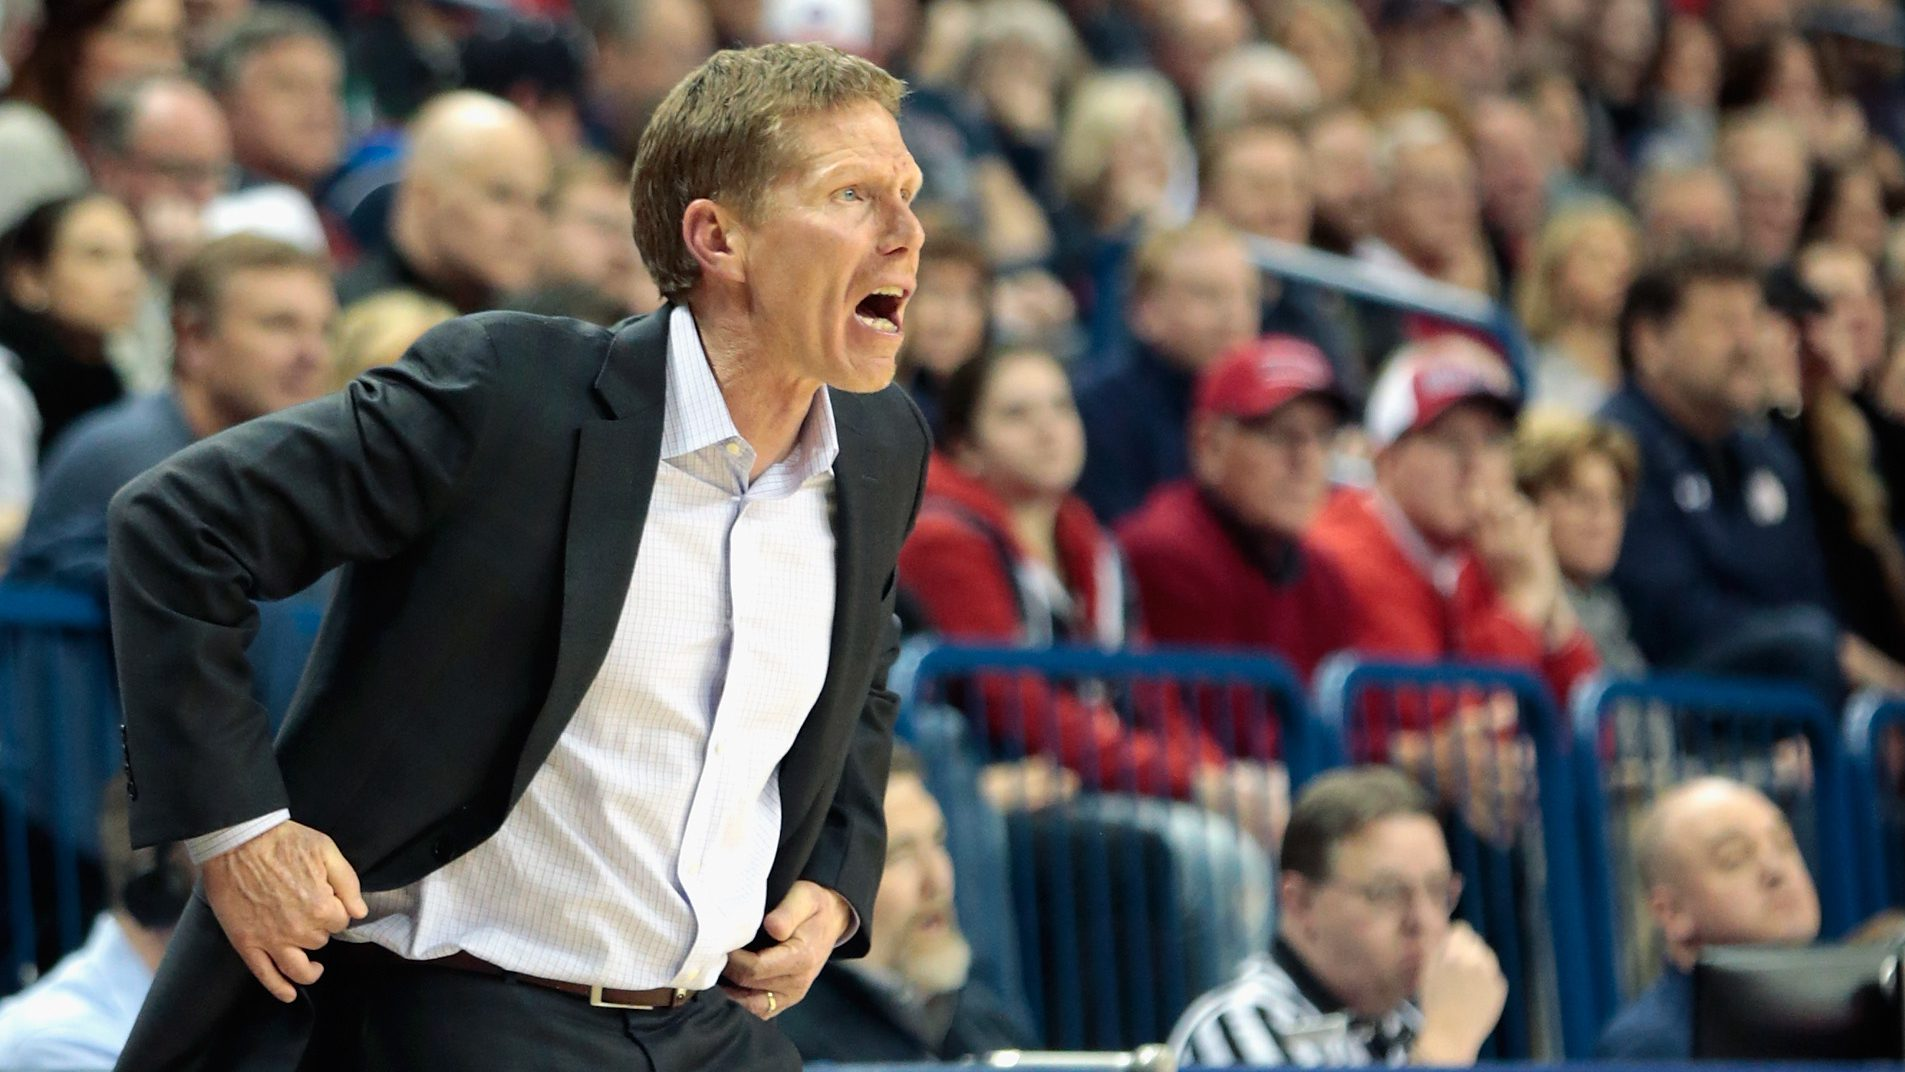 SPOKANE, WA - FEBRUARY 25: Head coach Mark Few of the Gonzaga Bulldogs works from the sideline in the second half against the BYU Cougars at McCarthey Athletic Center on February 25, 2017 in Spokane, Washington. BYU defeated Gonzaga 79-71. (Photo by William Mancebo/Getty Images)